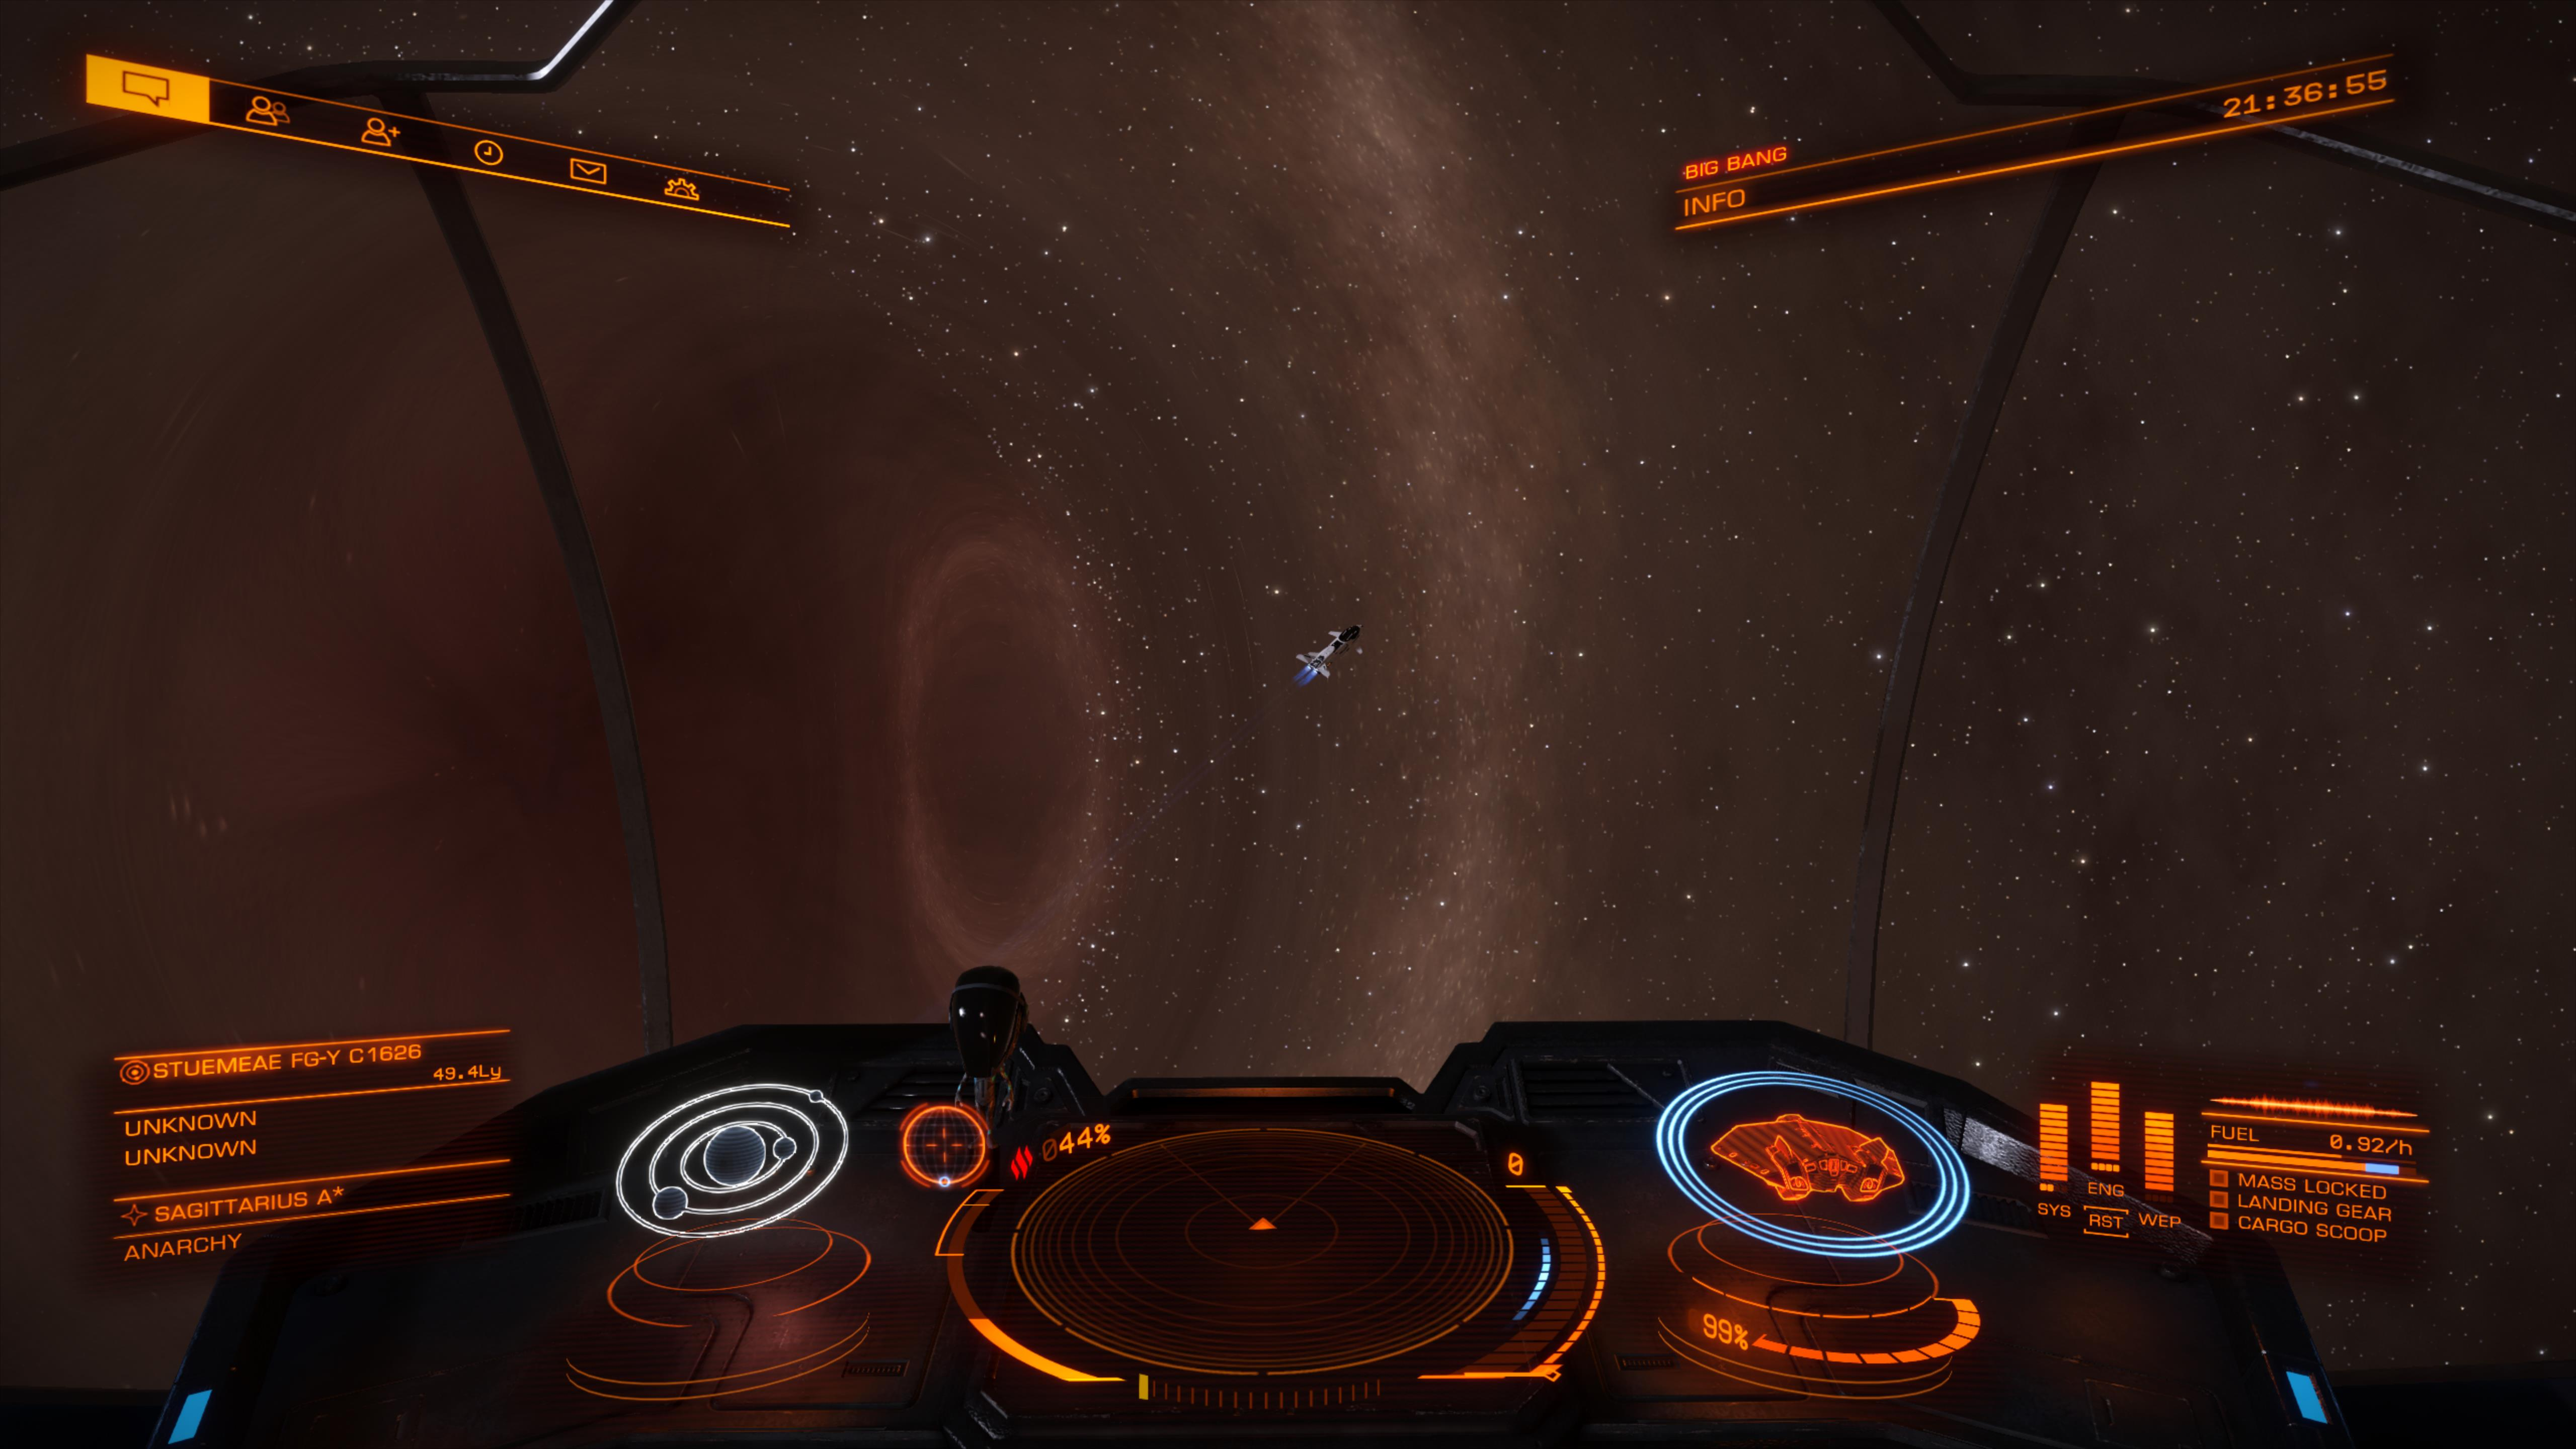 Passenger cruise ship flying by Sag A*